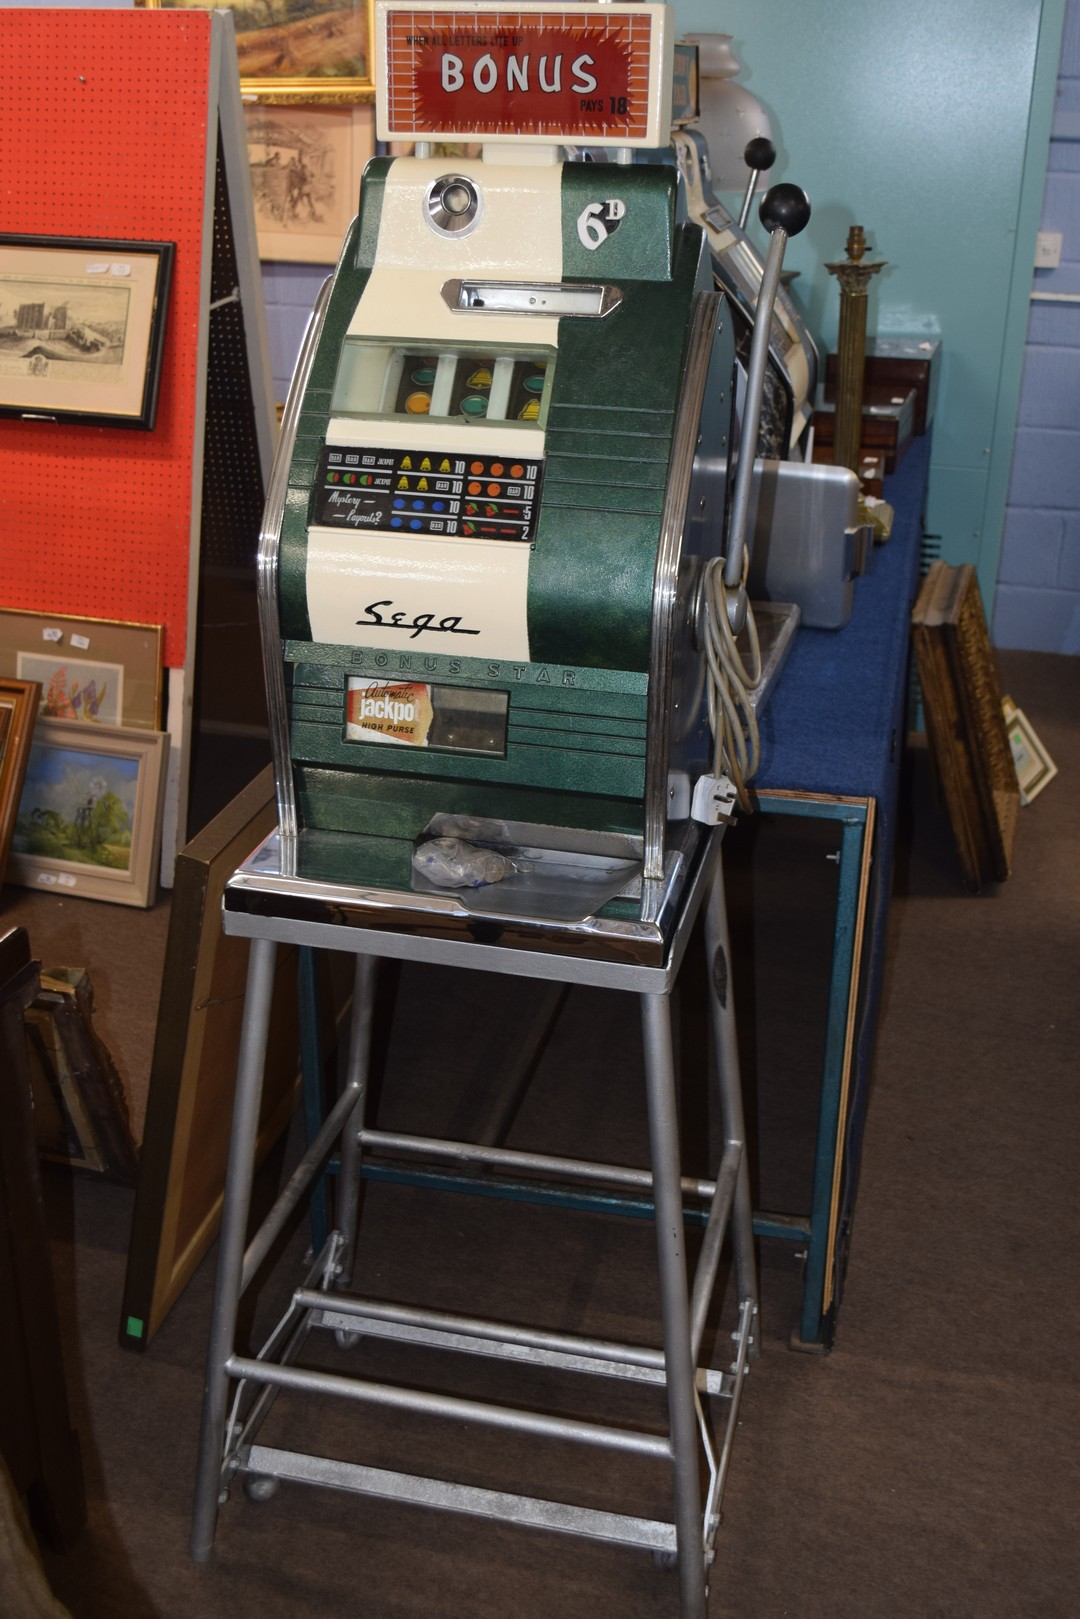 Bonus Star by Sega one-armed bandit fruit machine with electric light-up, approx 80cm high, together - Image 2 of 11